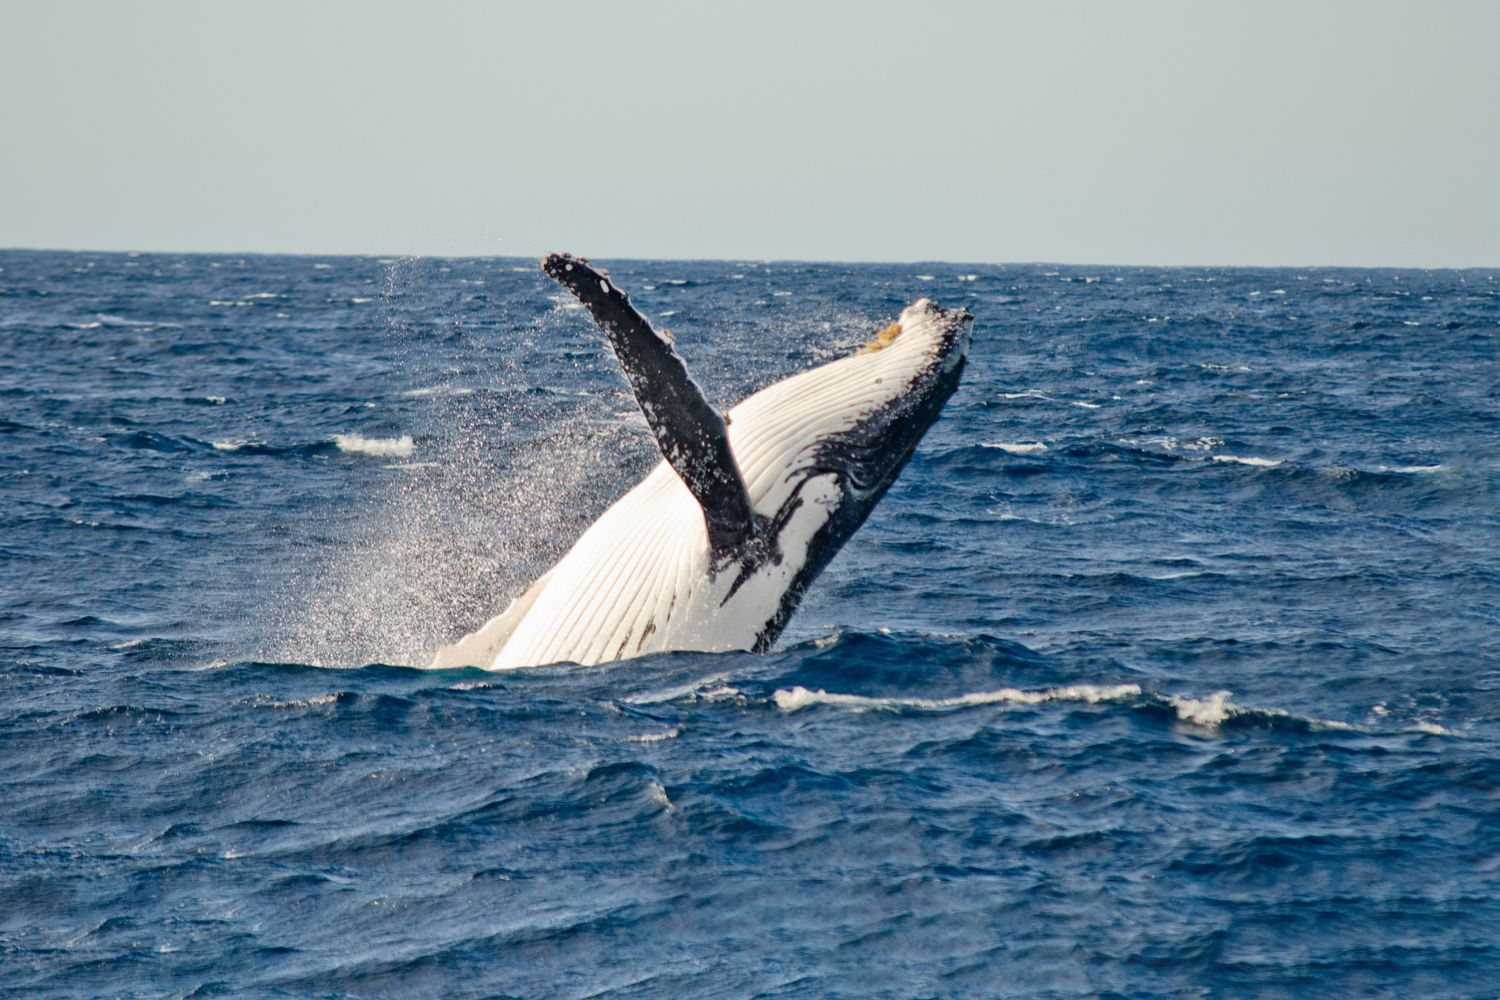 A whale breaches out of the water off Sydney waters